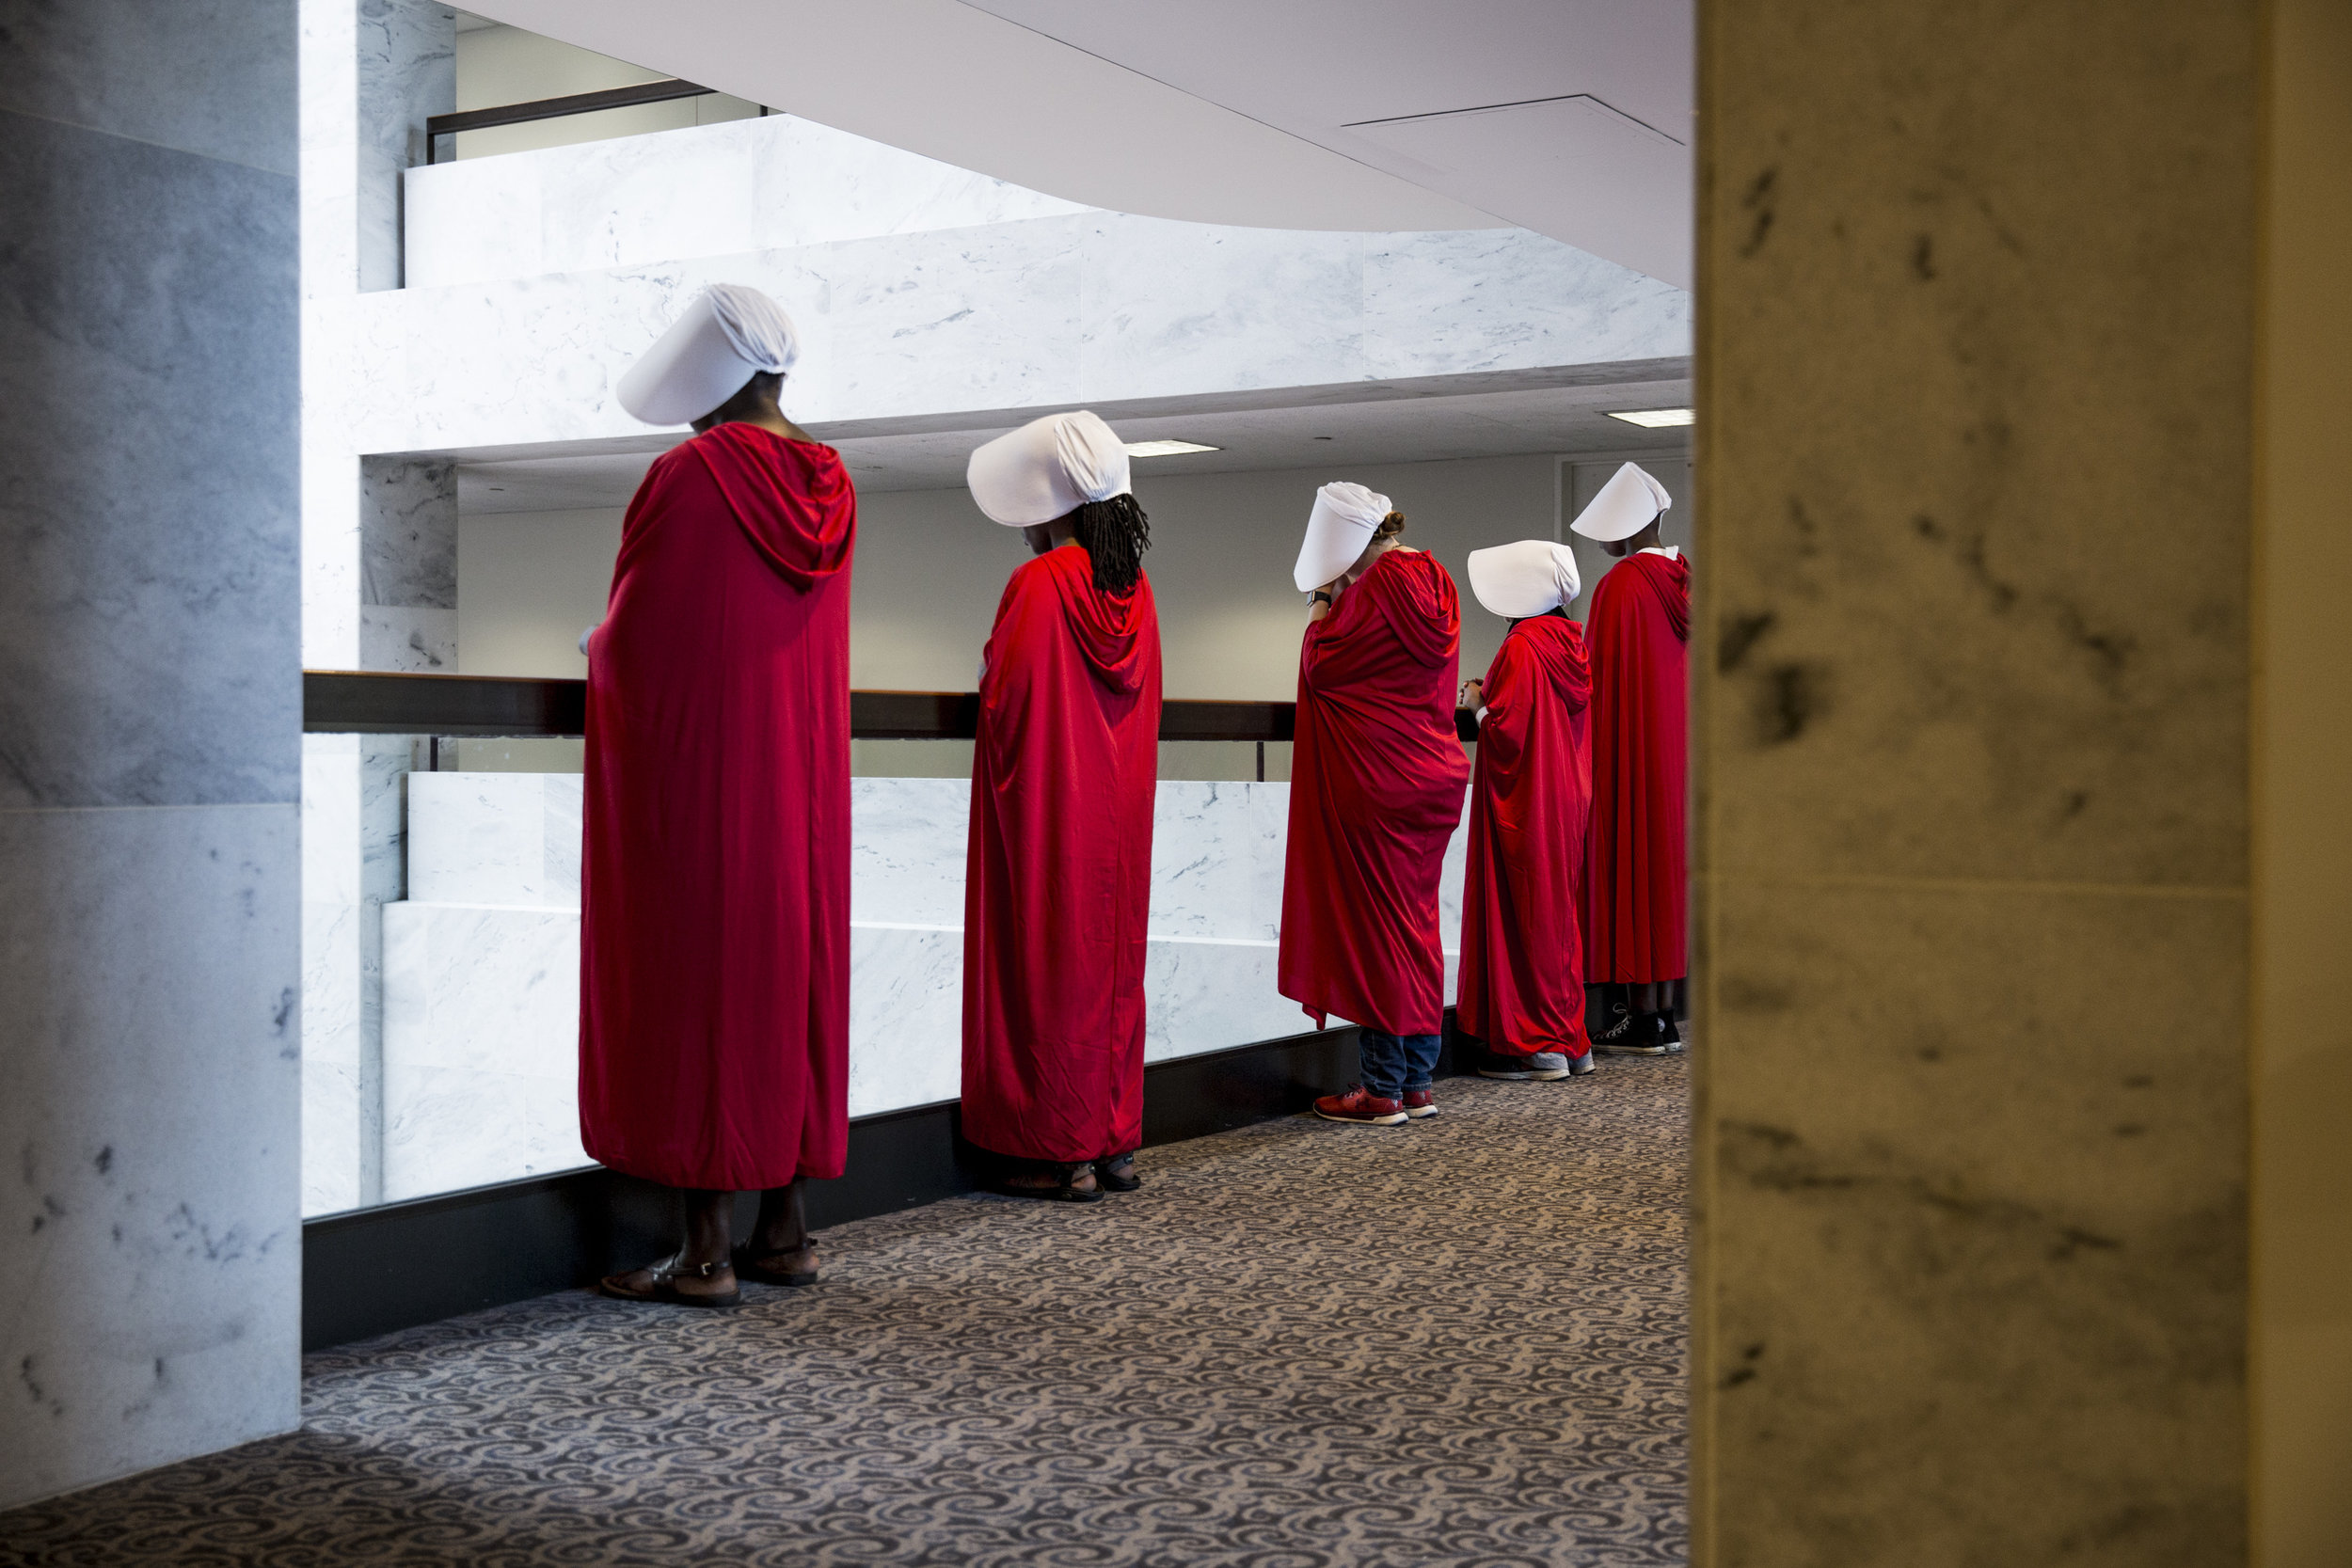 Protestors dressed as handmaids demonstrate in the hallways of the Hart Senate Building before the start of the second day of hearings for the confirmation of Supreme Court Nominee Brett Kavanaugh on September 5th, 2018